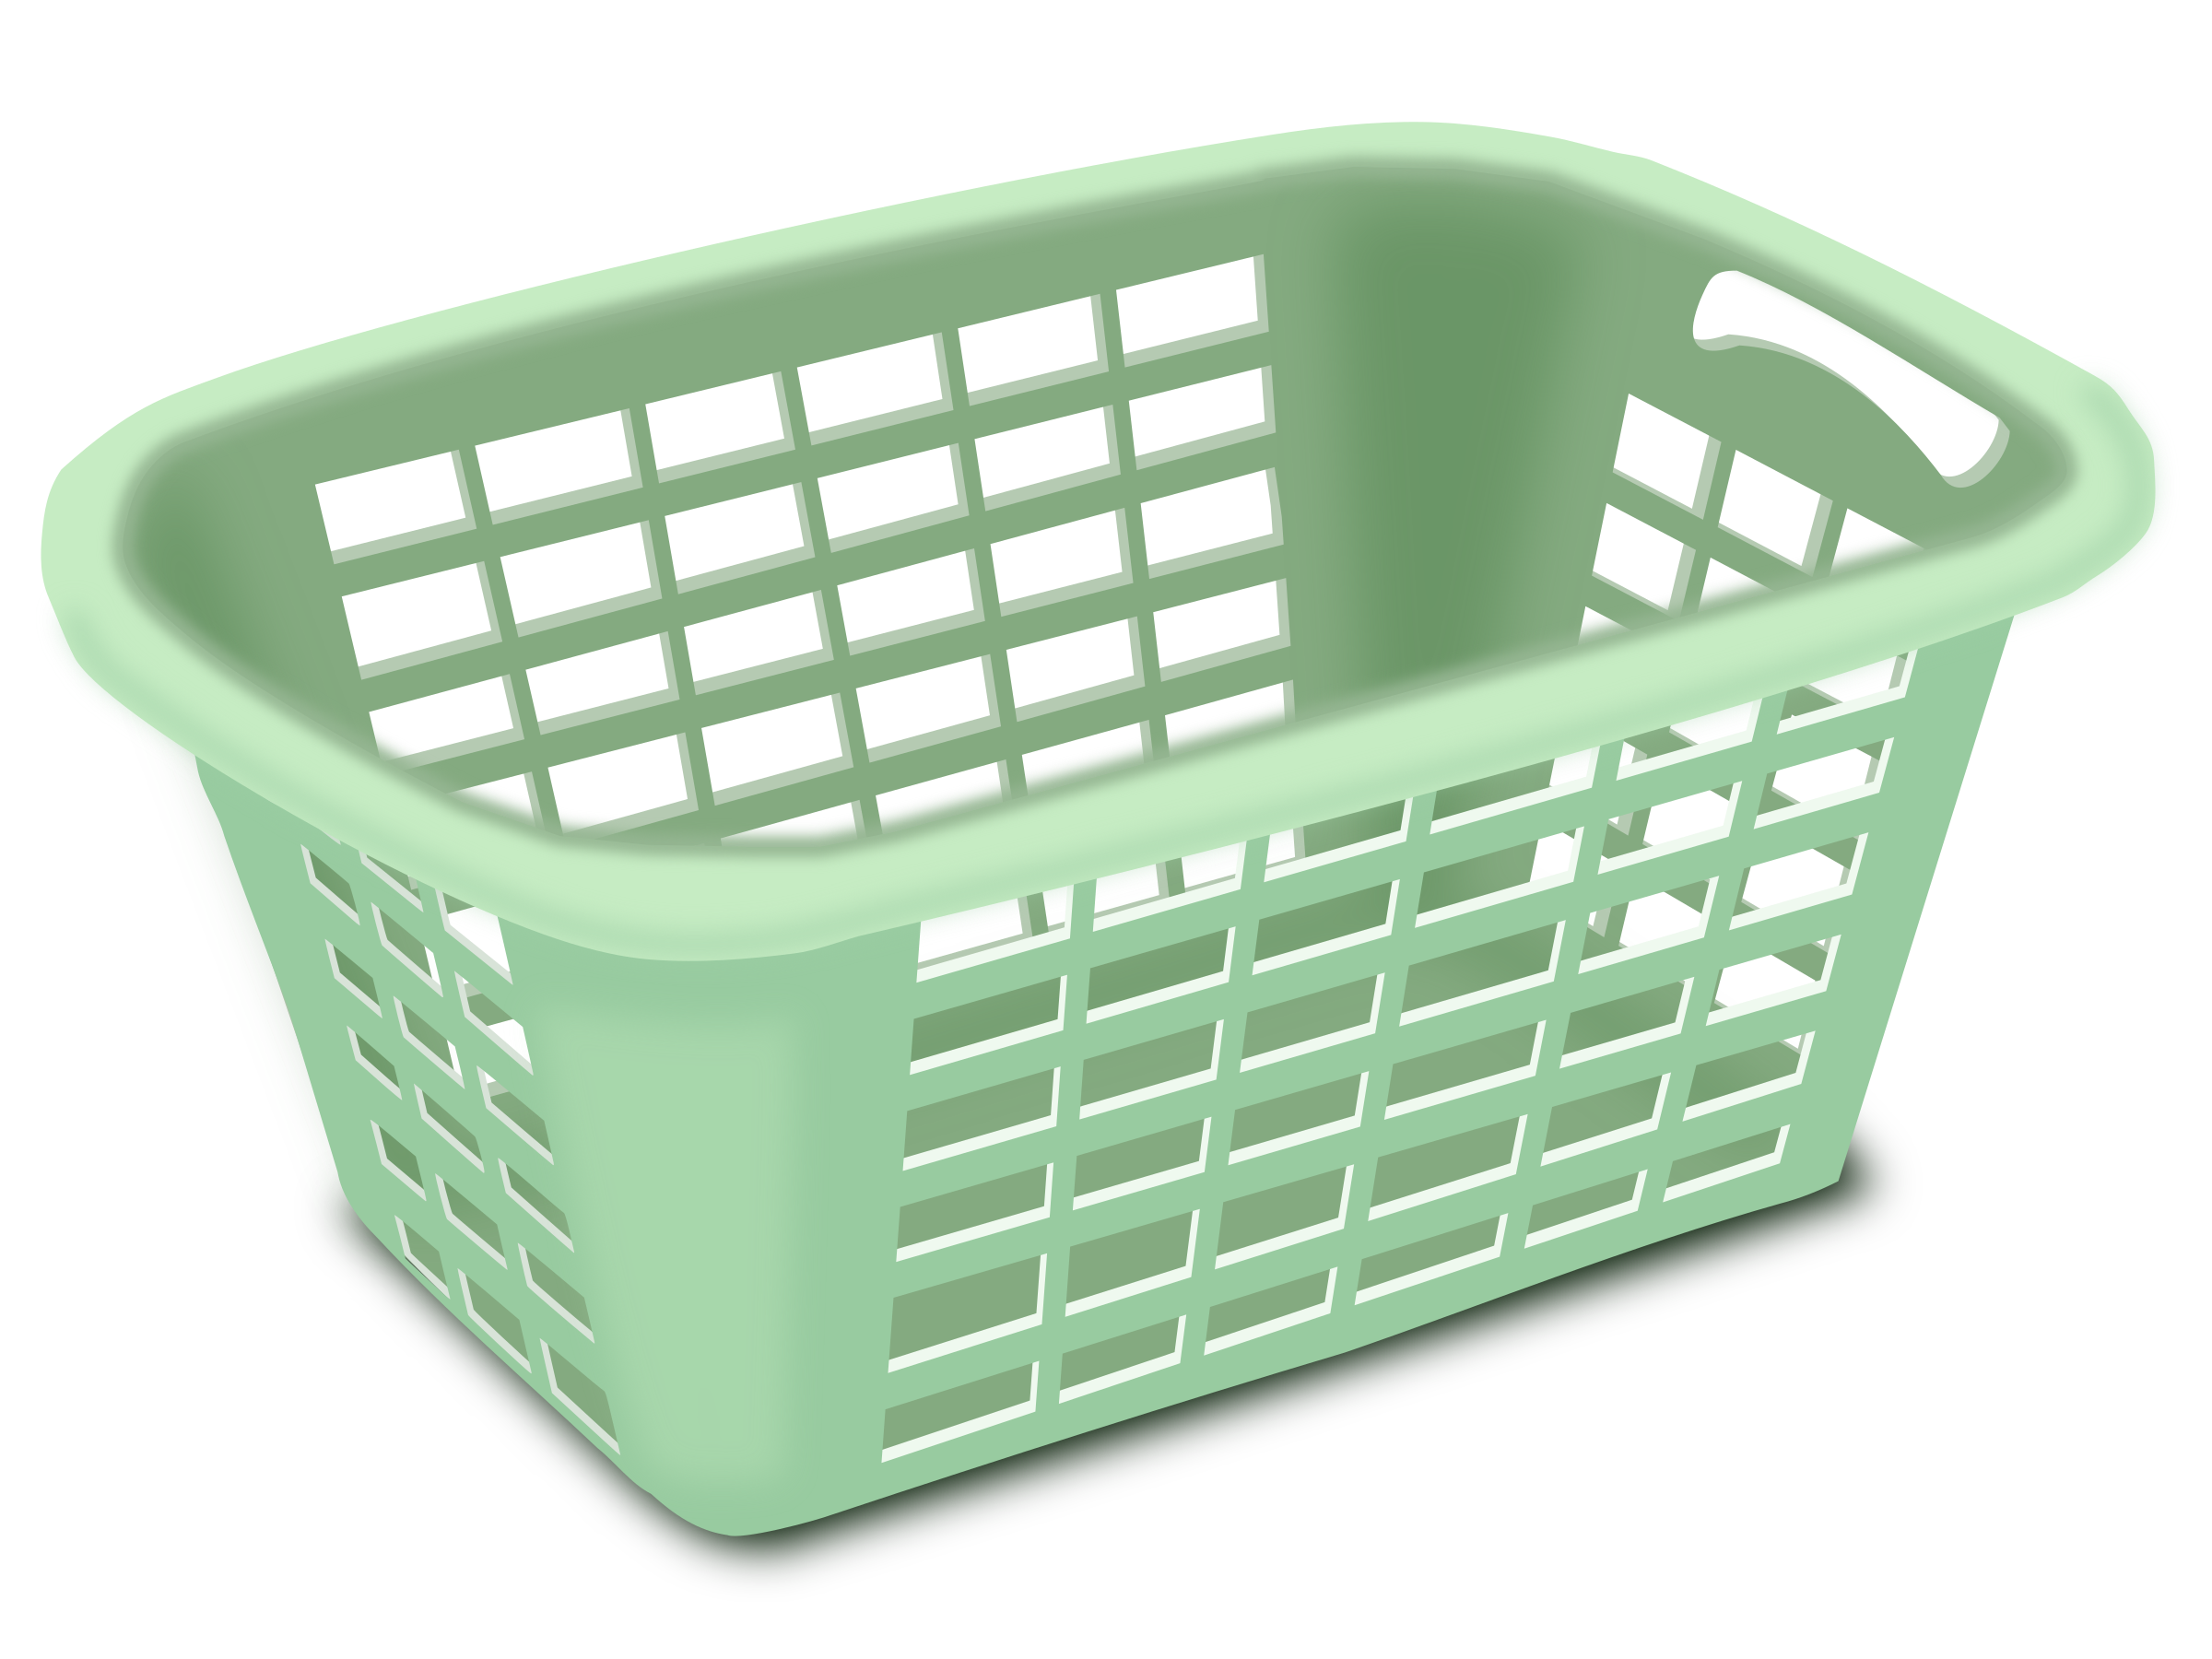 Plastic icons png free. Basket clipart laundry basket